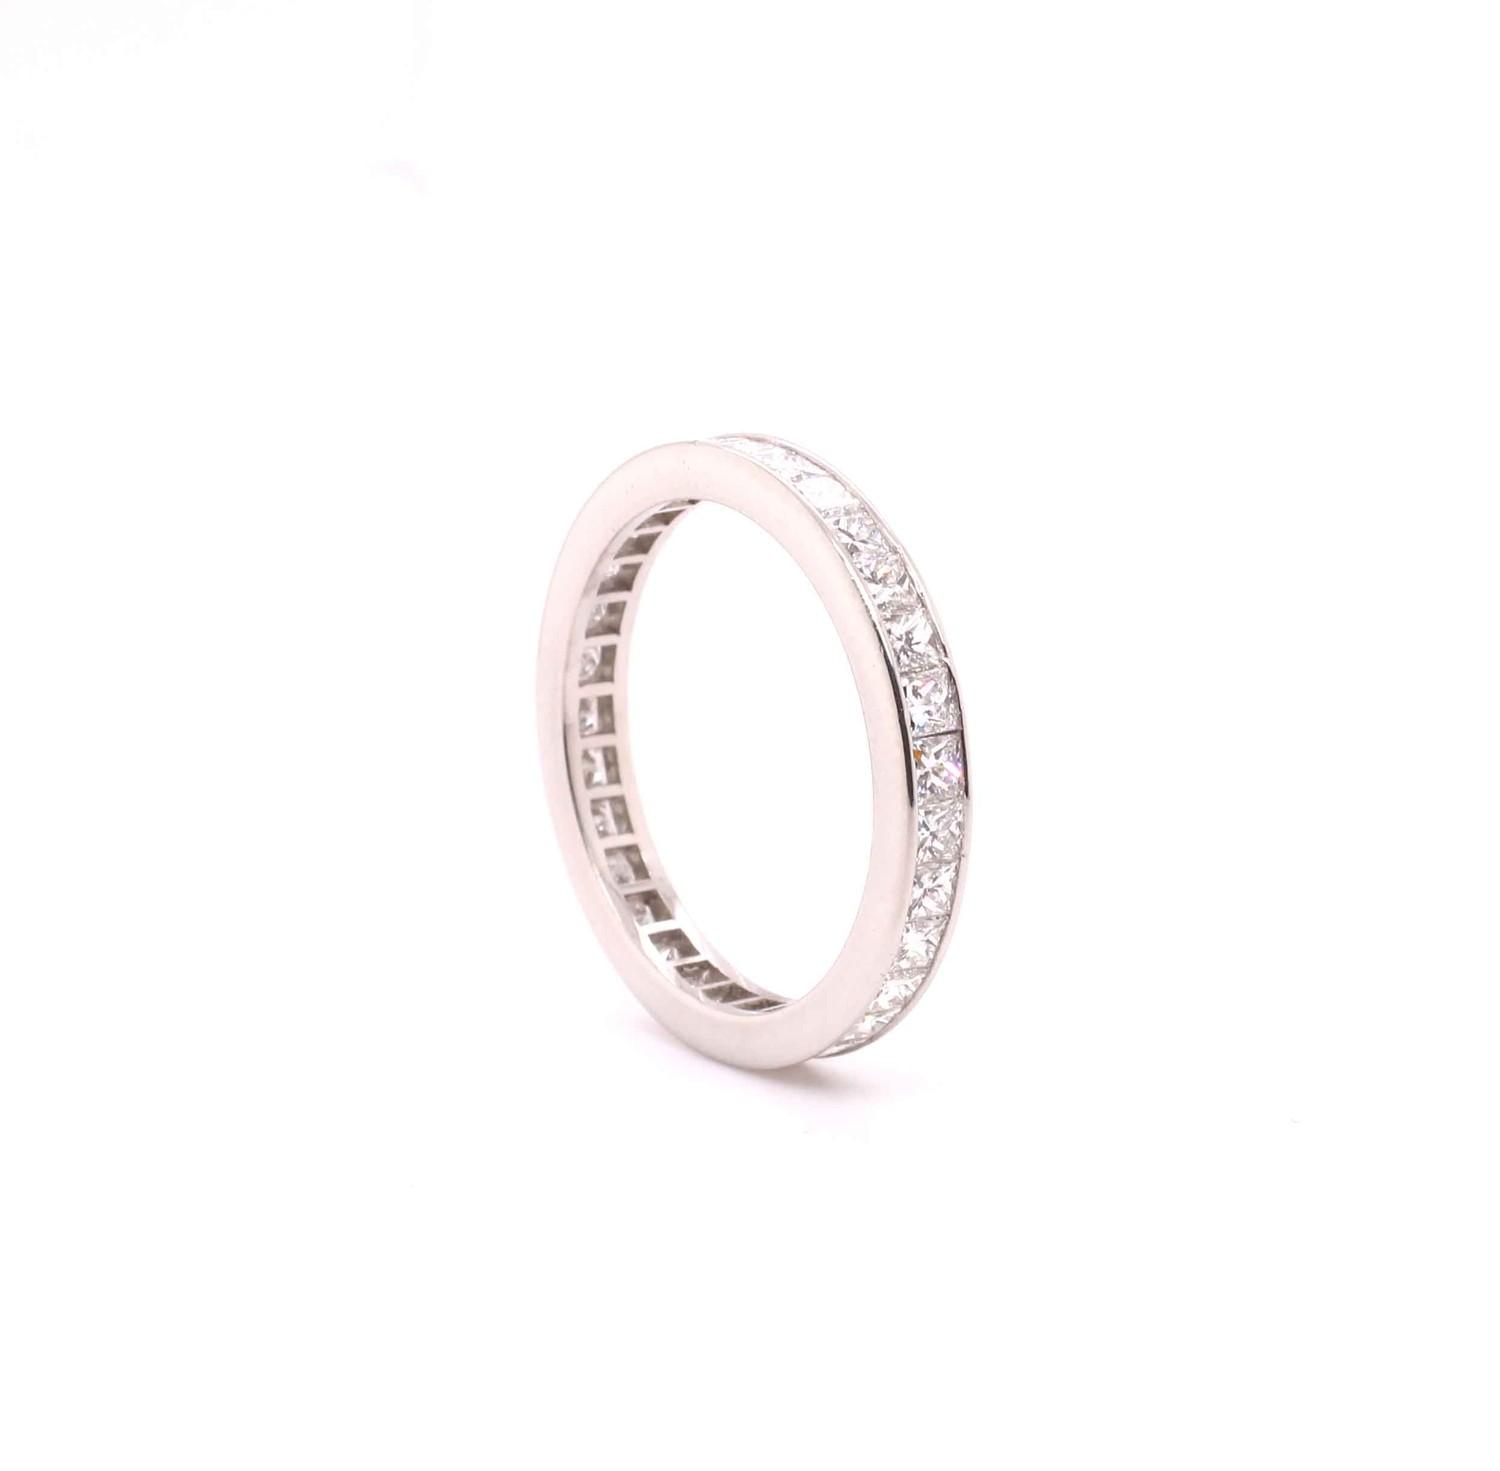 A Princess cut diamond eternity ring mounted in platinum by Tiffany & Co. Contemporary. Signed - Image 4 of 6